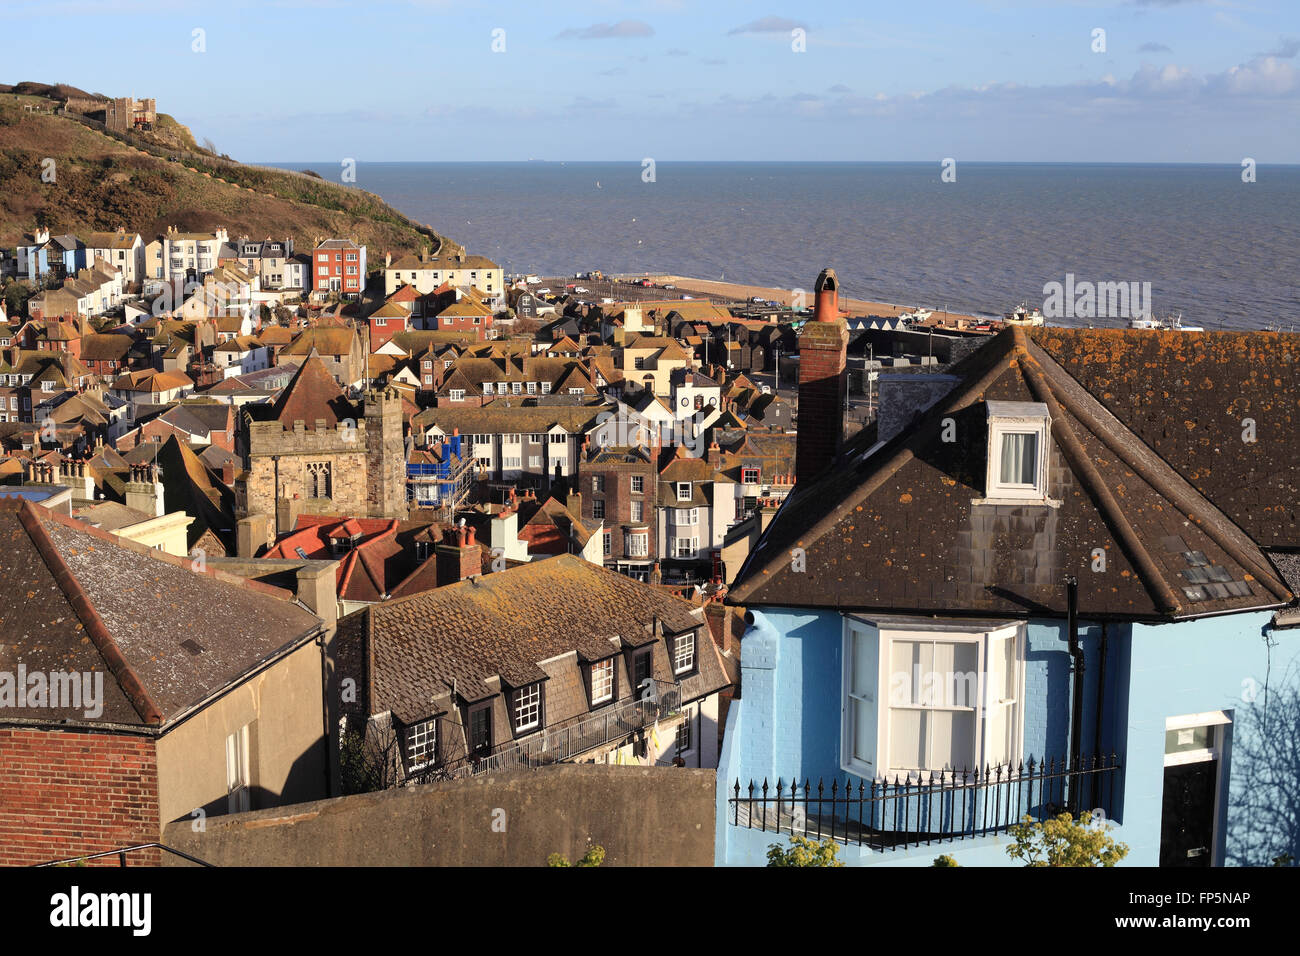 Hastings old town and East Hill lift seen from the top of the West Hill, East Sussex, UK - Stock Image